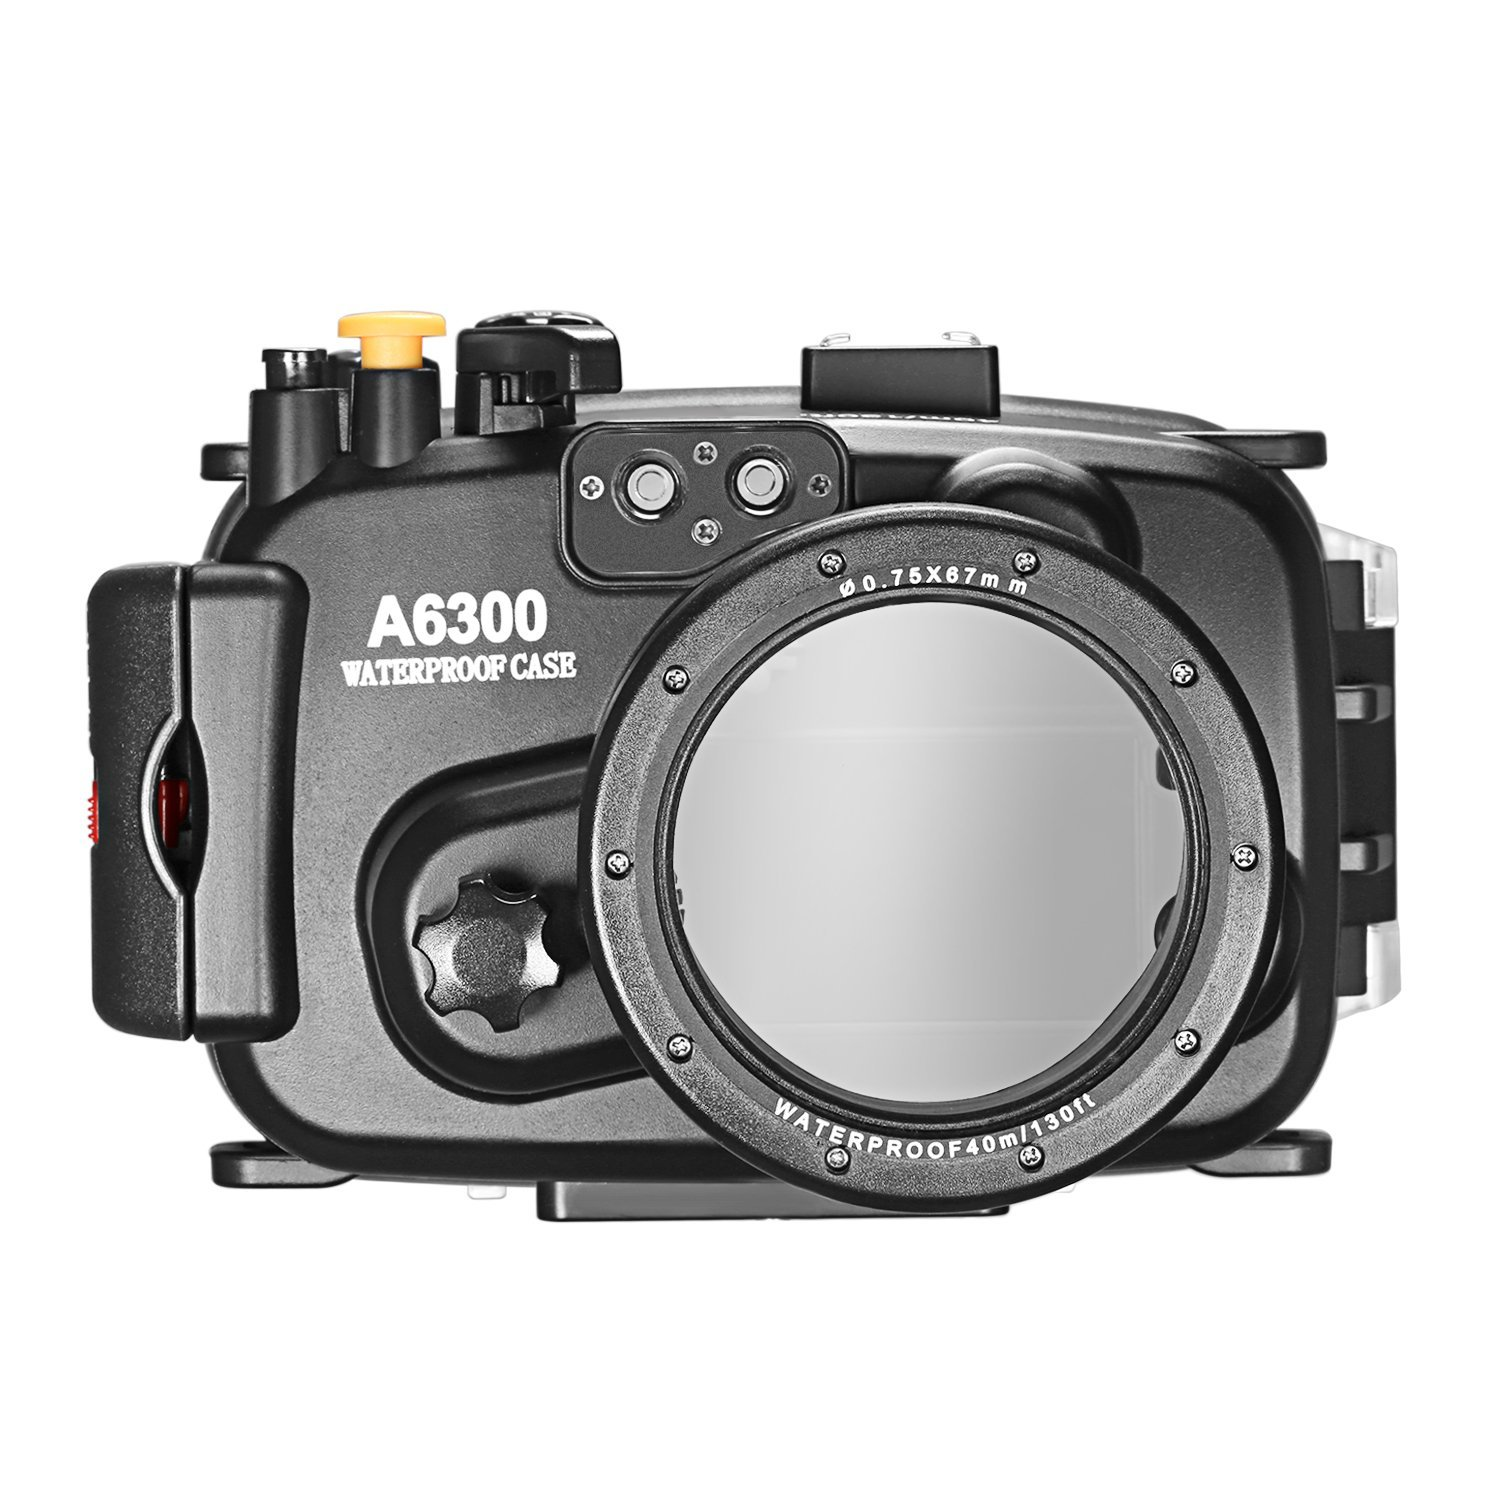 Neewer Waterproof Camera Case for Sony A6300 with 16-50mm Lens, 40 meters/131 feet Water-Resistant Protective Housing for Shooting in Underwater Diving Snorkeling Rainy Snowy Dust Muddy Circumstances by Neewer